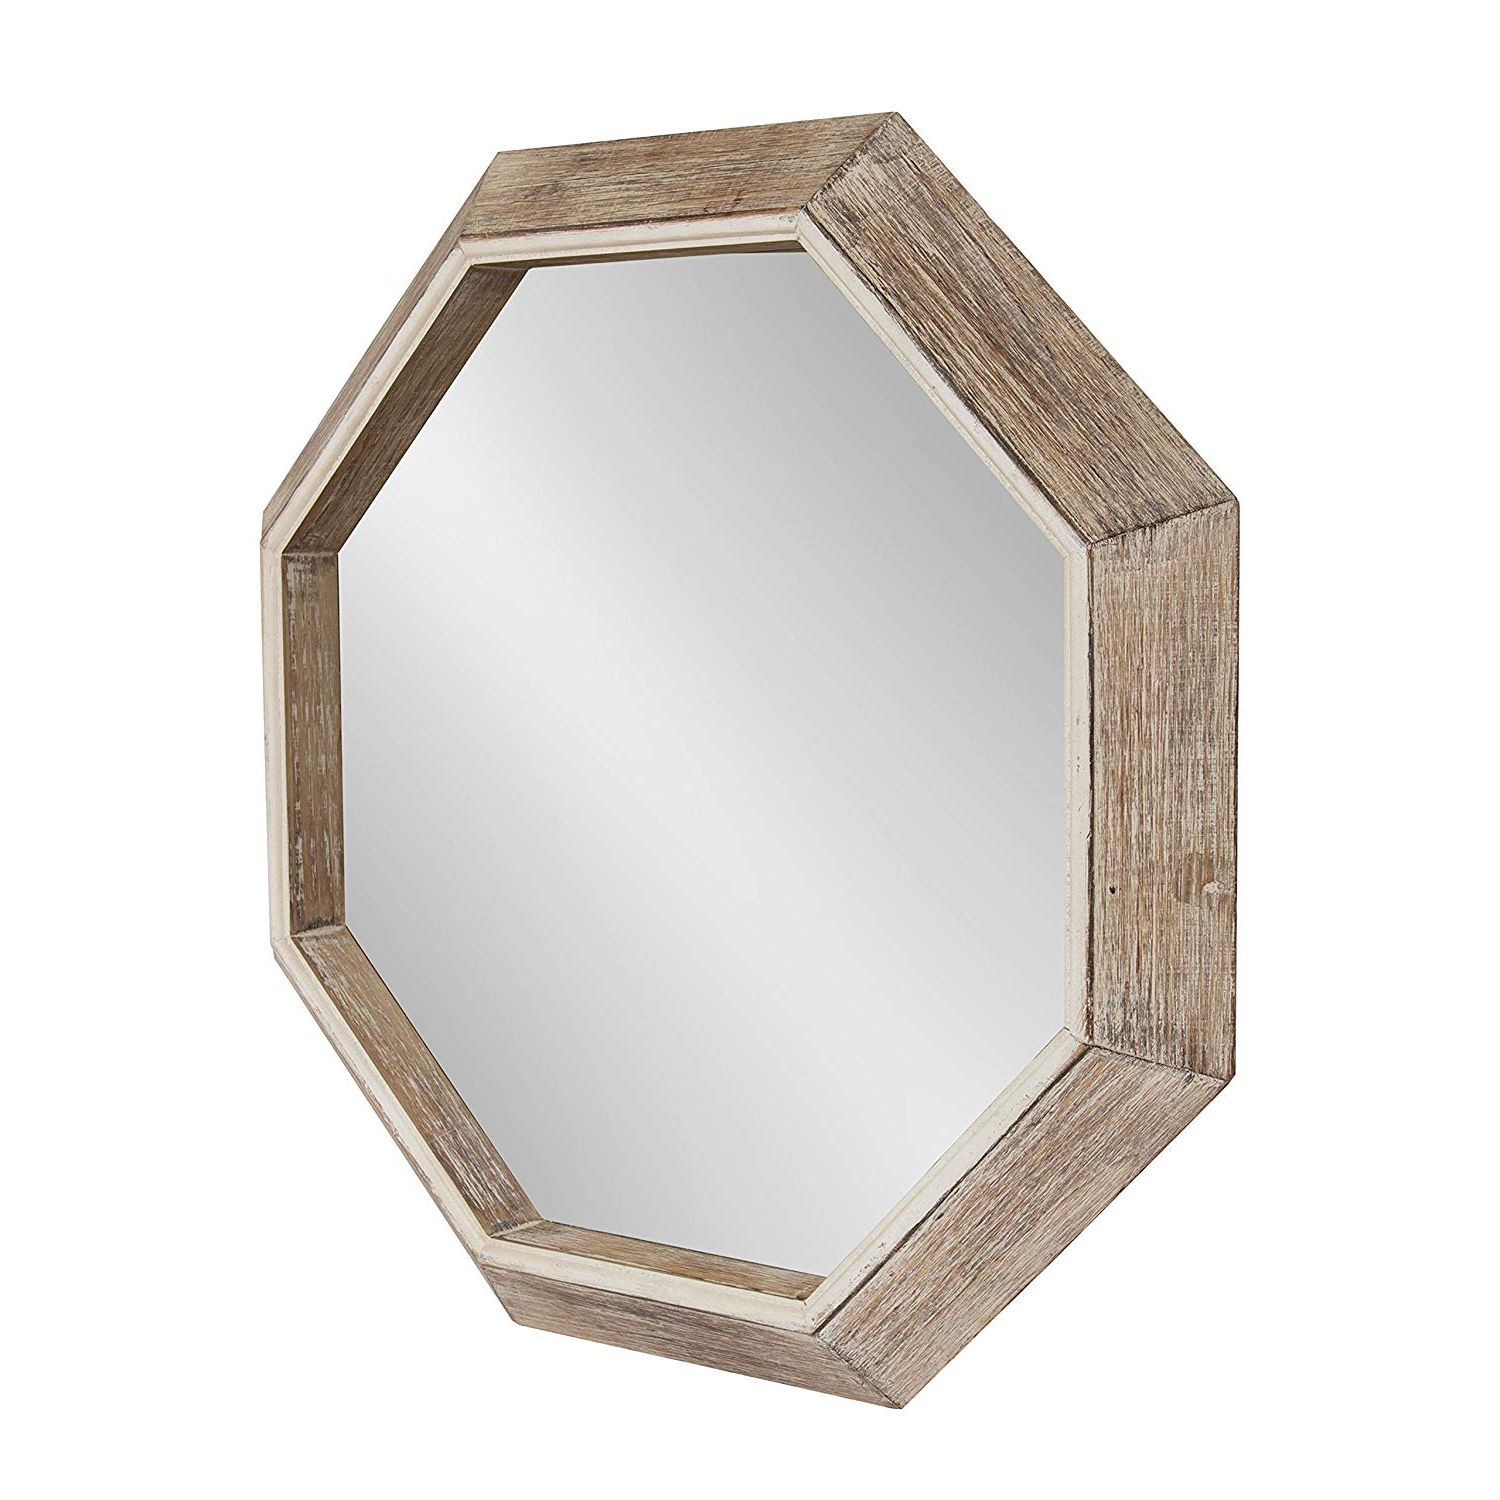 Preferred Octagon Wall Mirrors Regarding Kate And Laurel Yves Large Rustic Wooden Octagon Wall Mirror, White, 30 X (View 5 of 20)